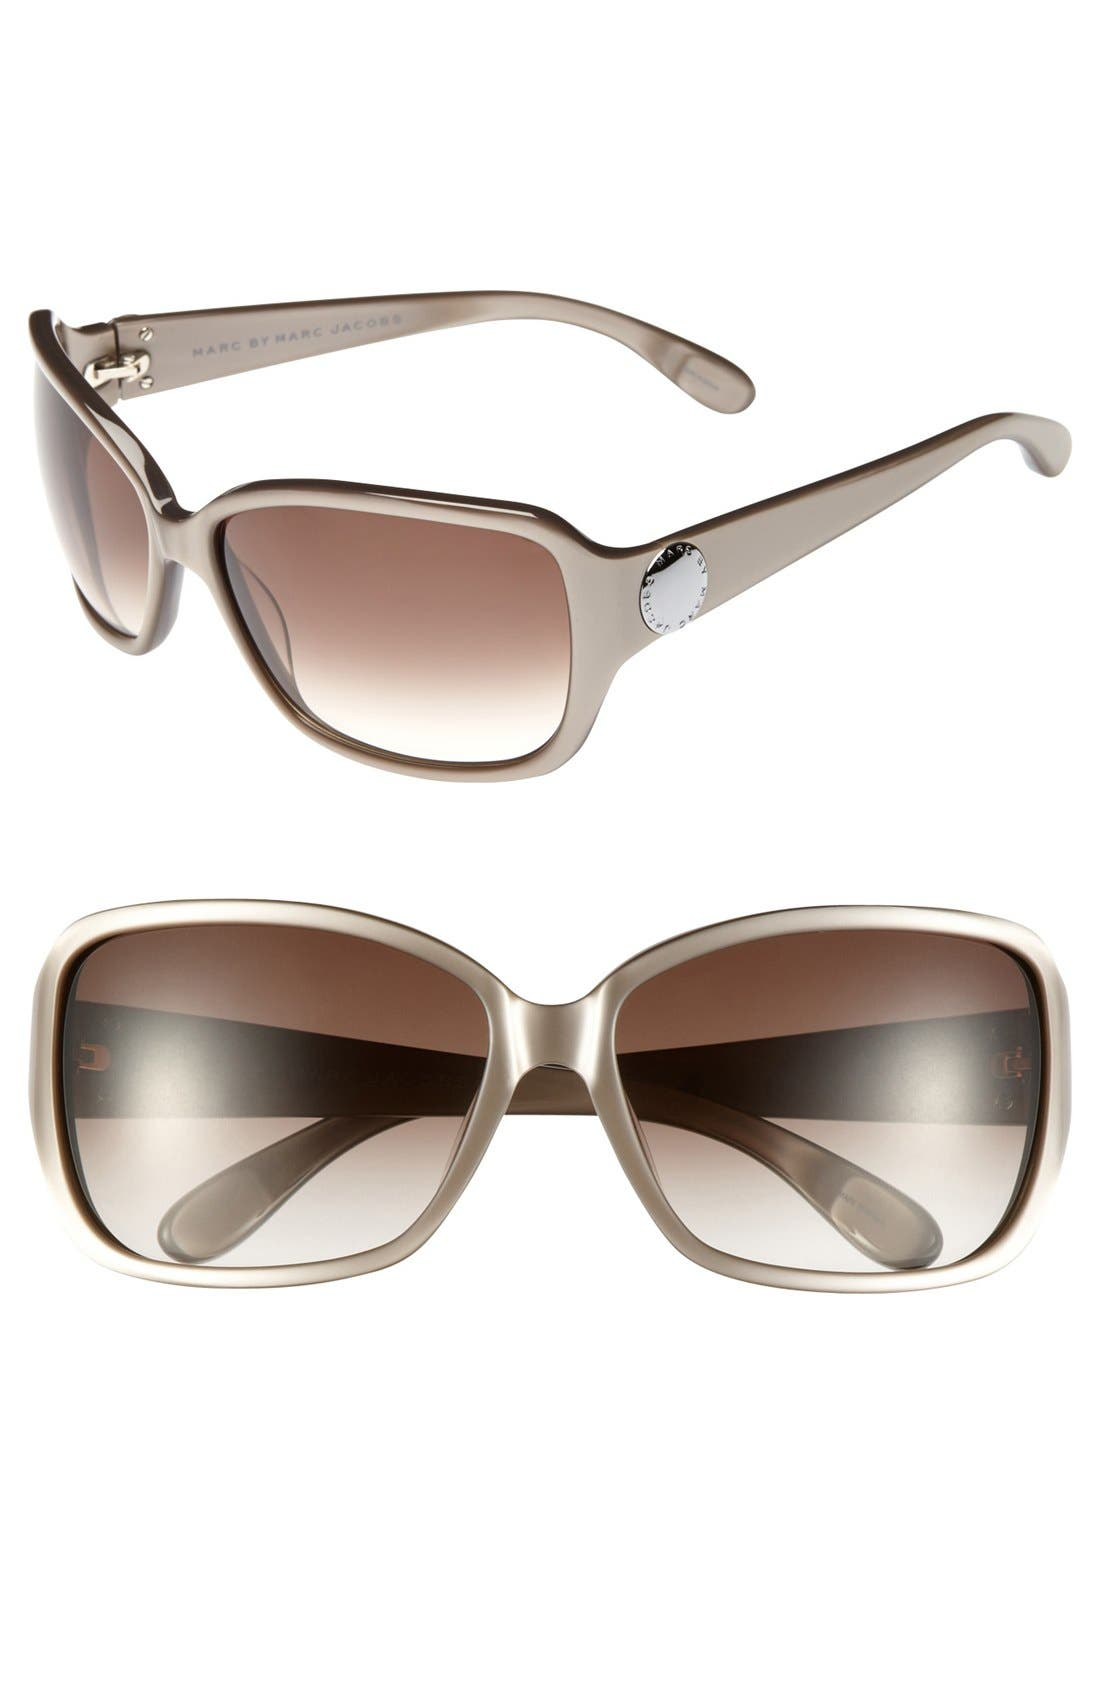 Main Image - MARC BY MARC JACOBS Metal Logo 60mm Square Sunglasses